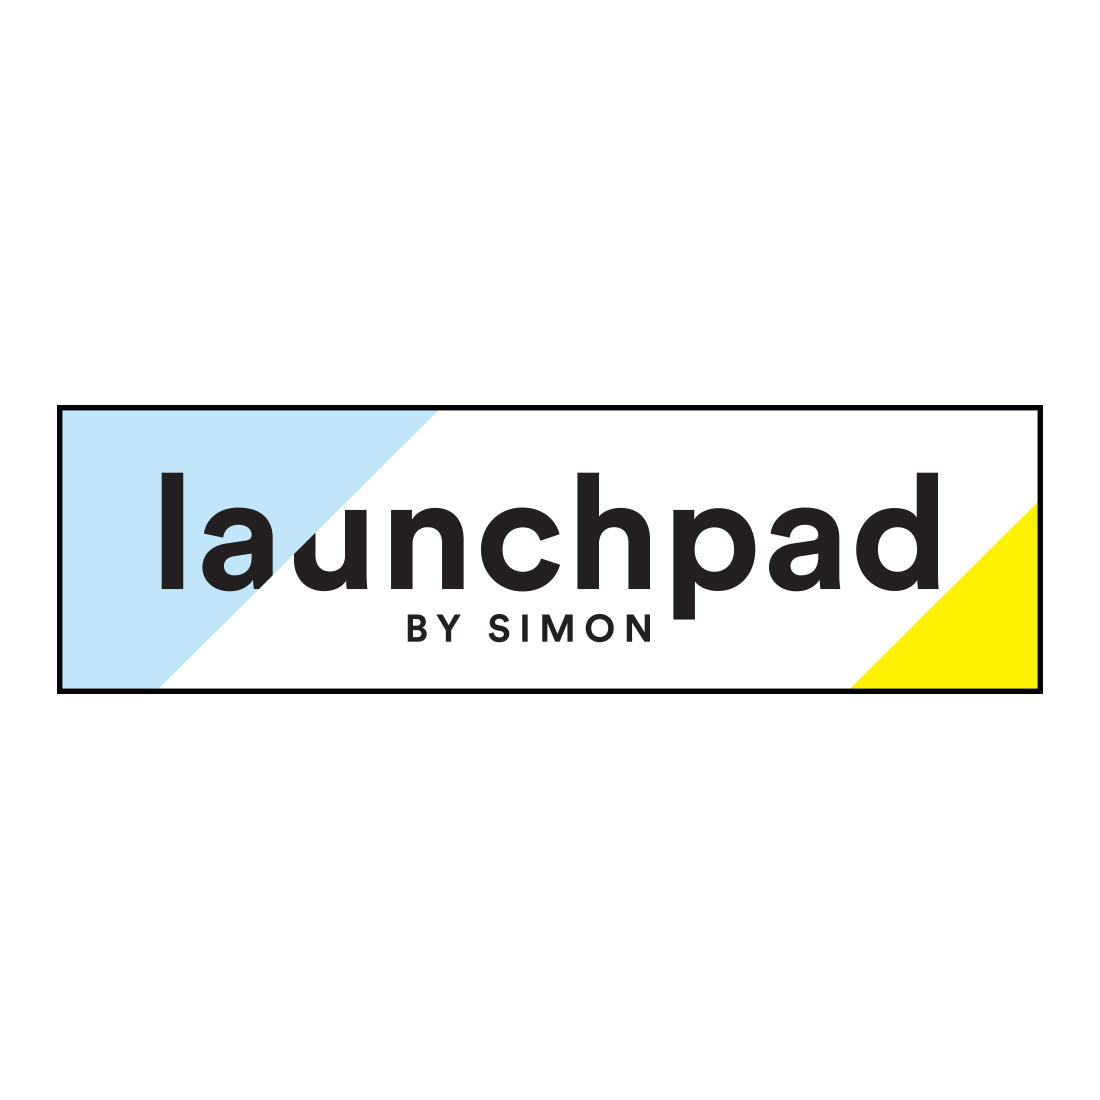 launchpad, by Simon